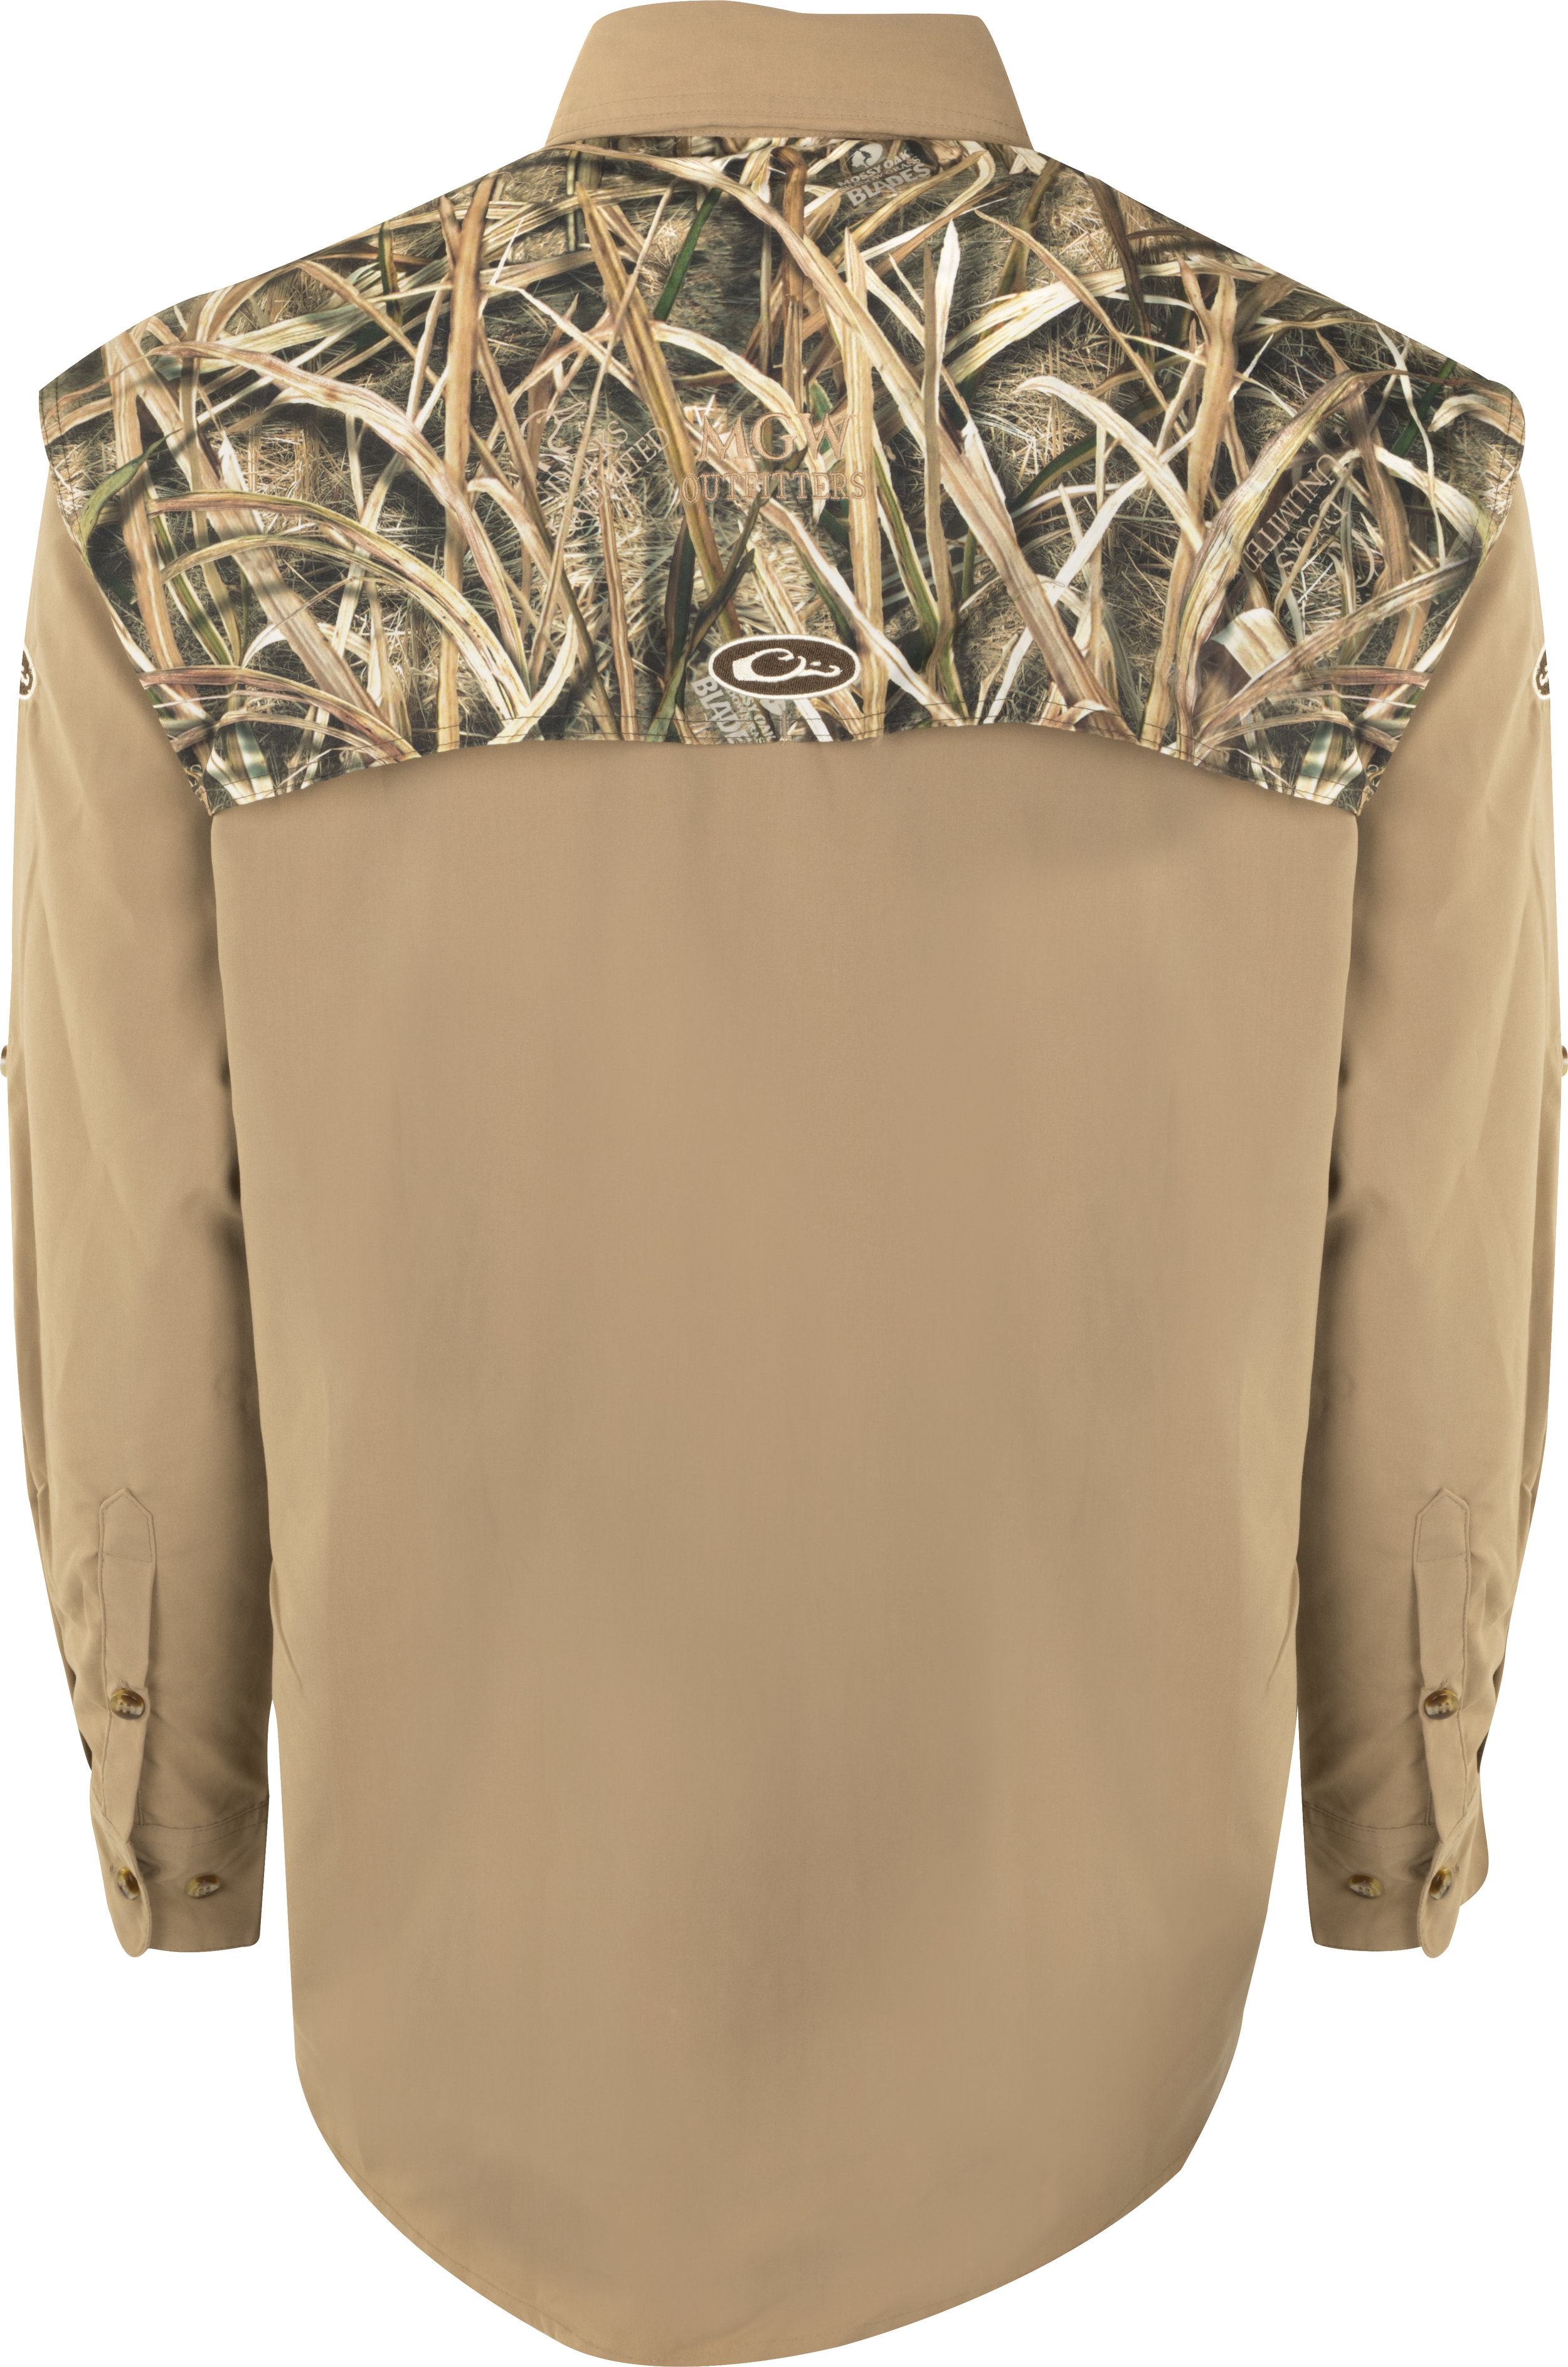 Drake Two-Tone Blades Camo Flyweight Wingshooter's Shirt L/S  - $80